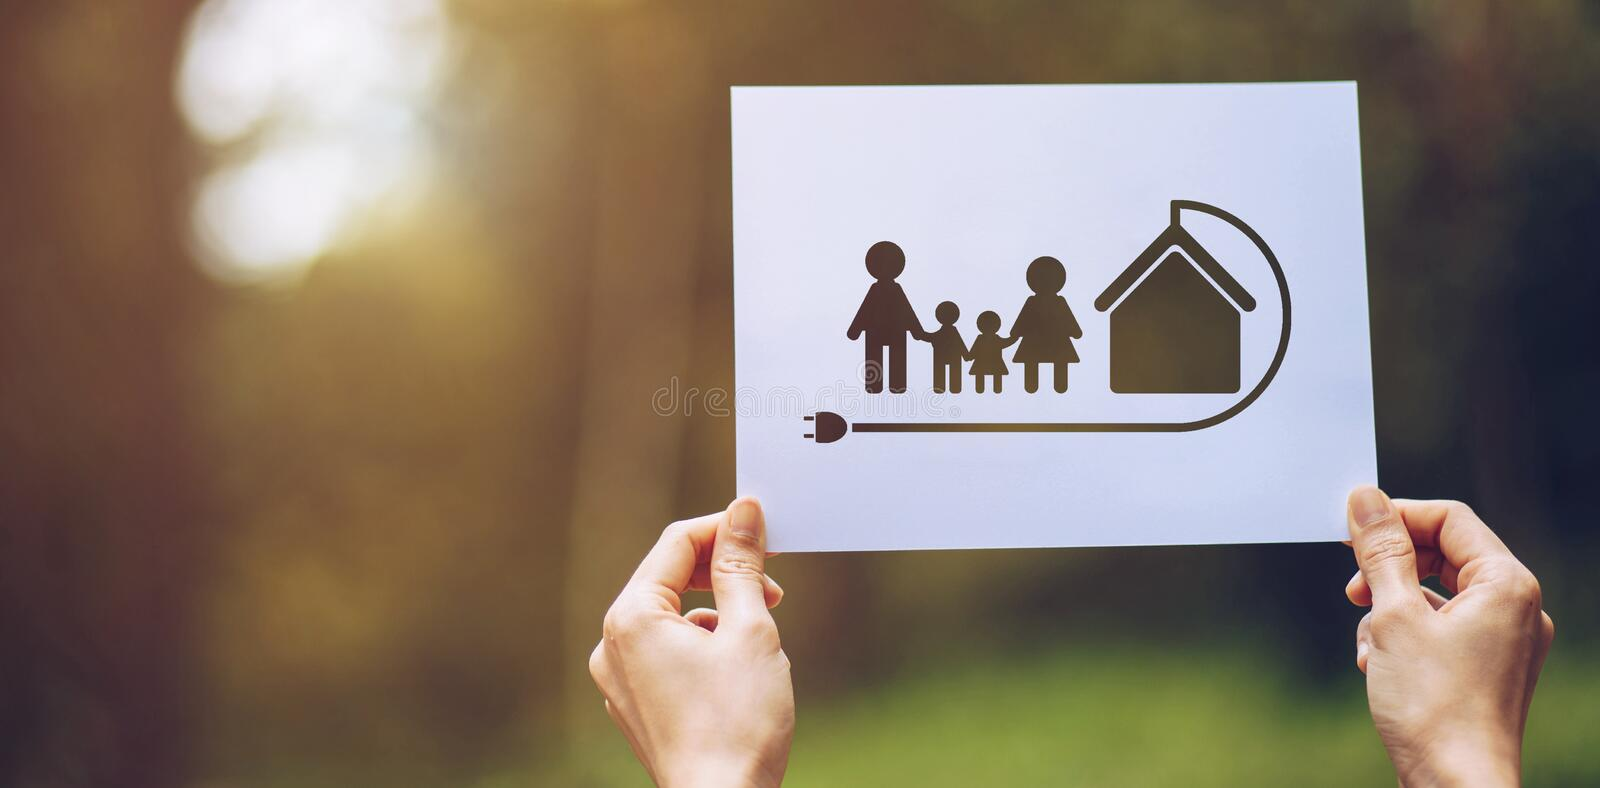 Save world ecology concept environmental conservation with hands holding cut out paper earth loving ecology family showing. Green, nature, tree, protection stock photo